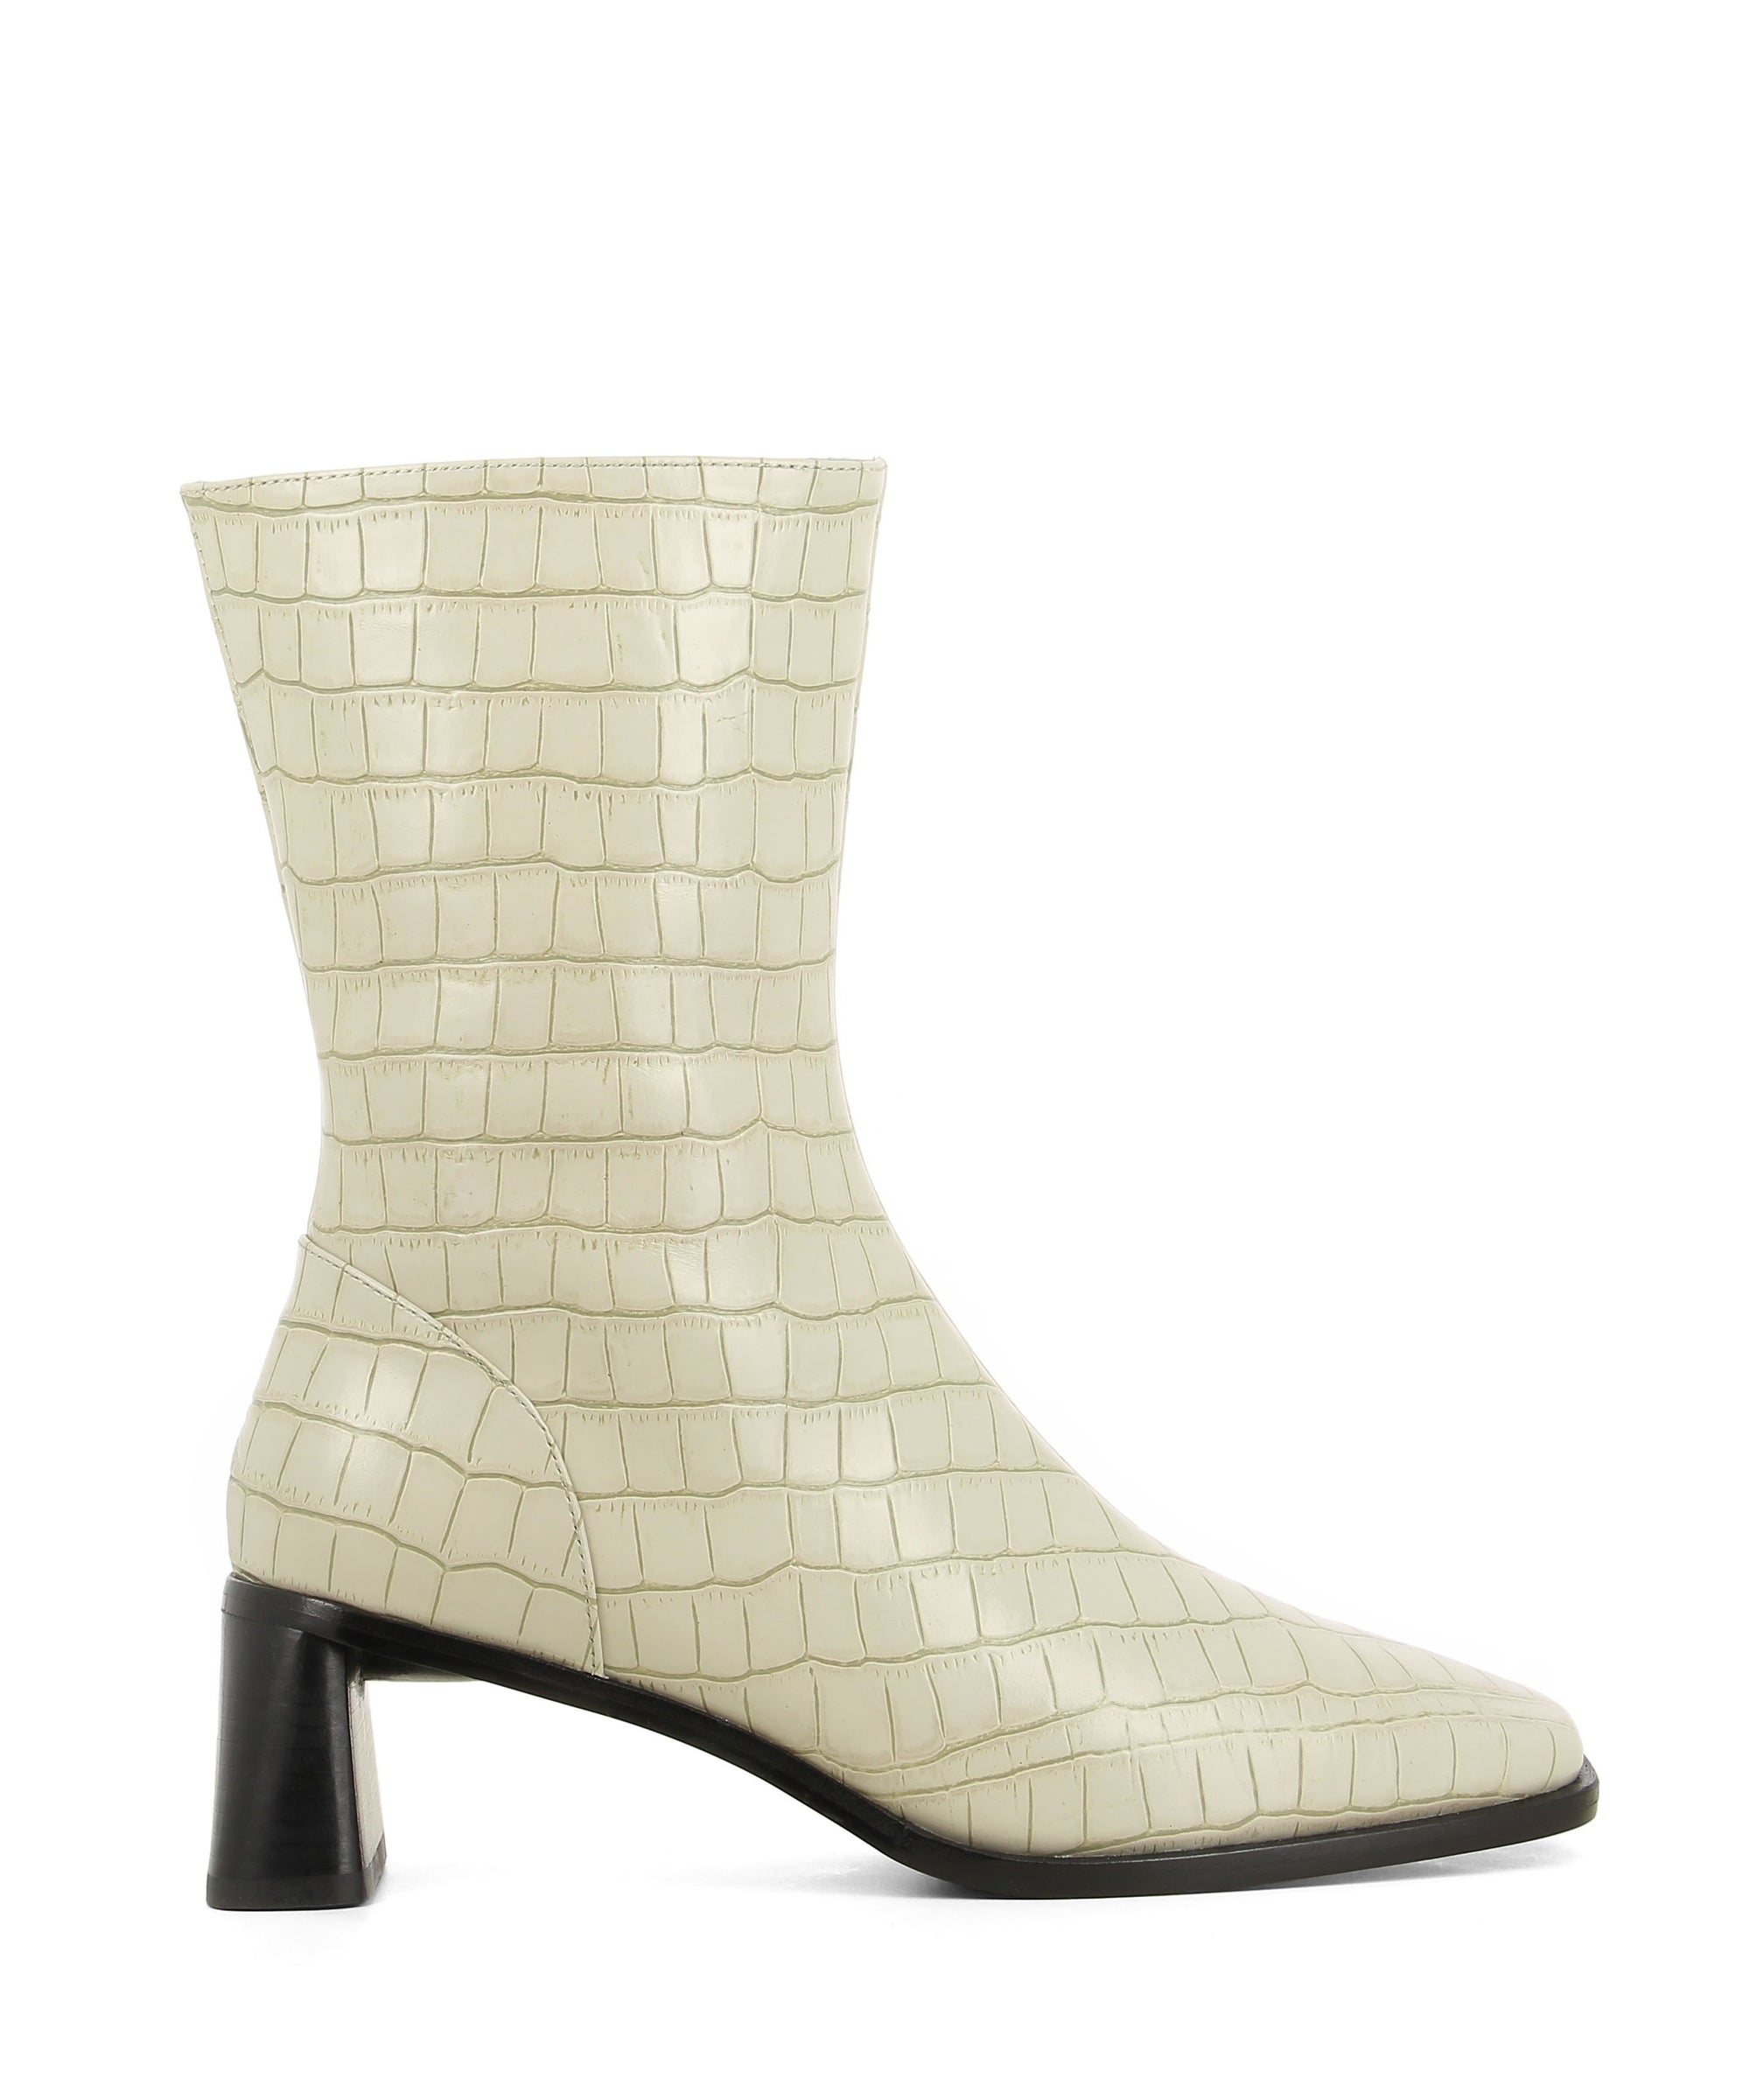 Sleek cream croc ankle boots featuring zipper fastenings seam detailing on the upper, a flared block heel and a square toe by 2 Baia Vista.